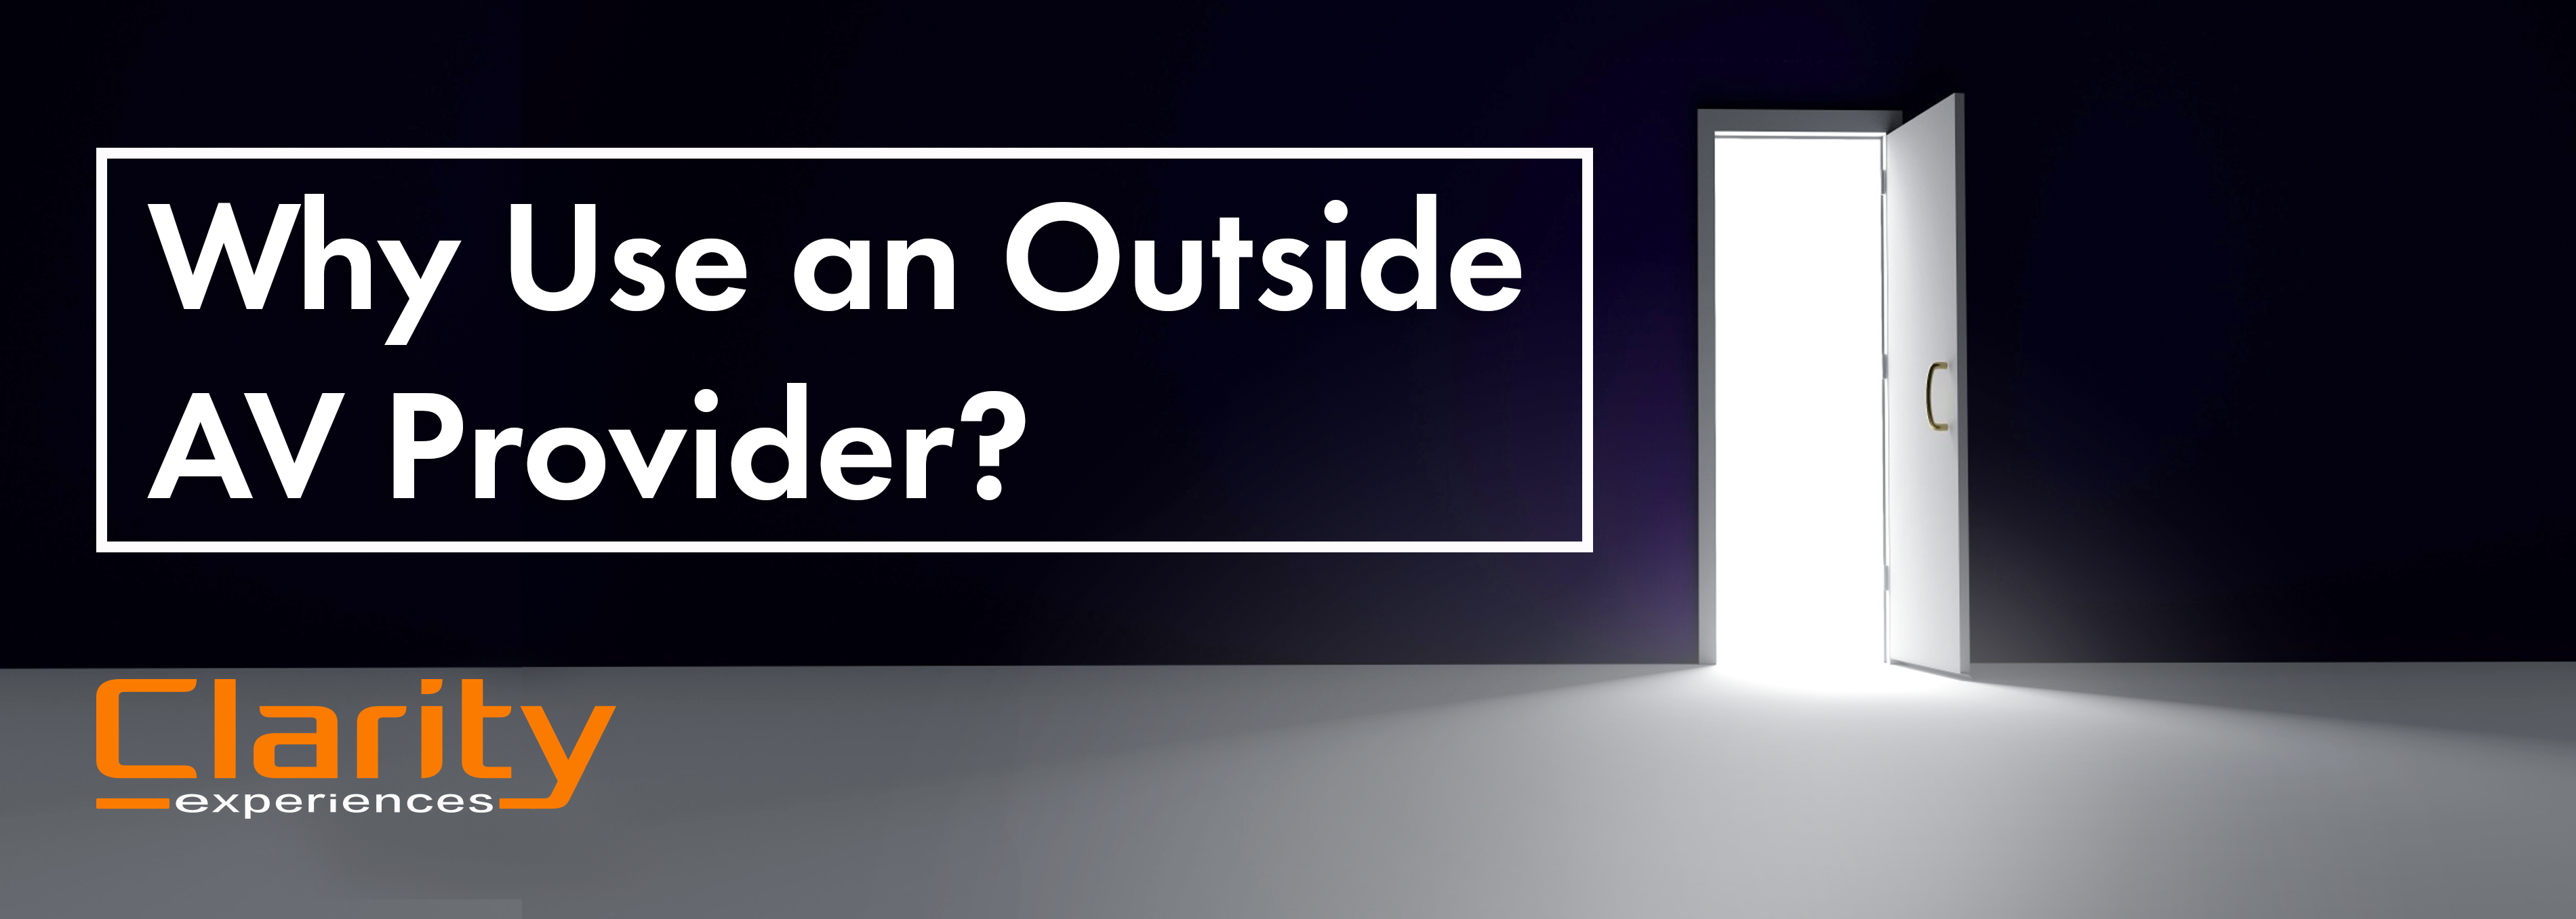 Why Use an Outside Audio Visual Provider   Clarity Experiences